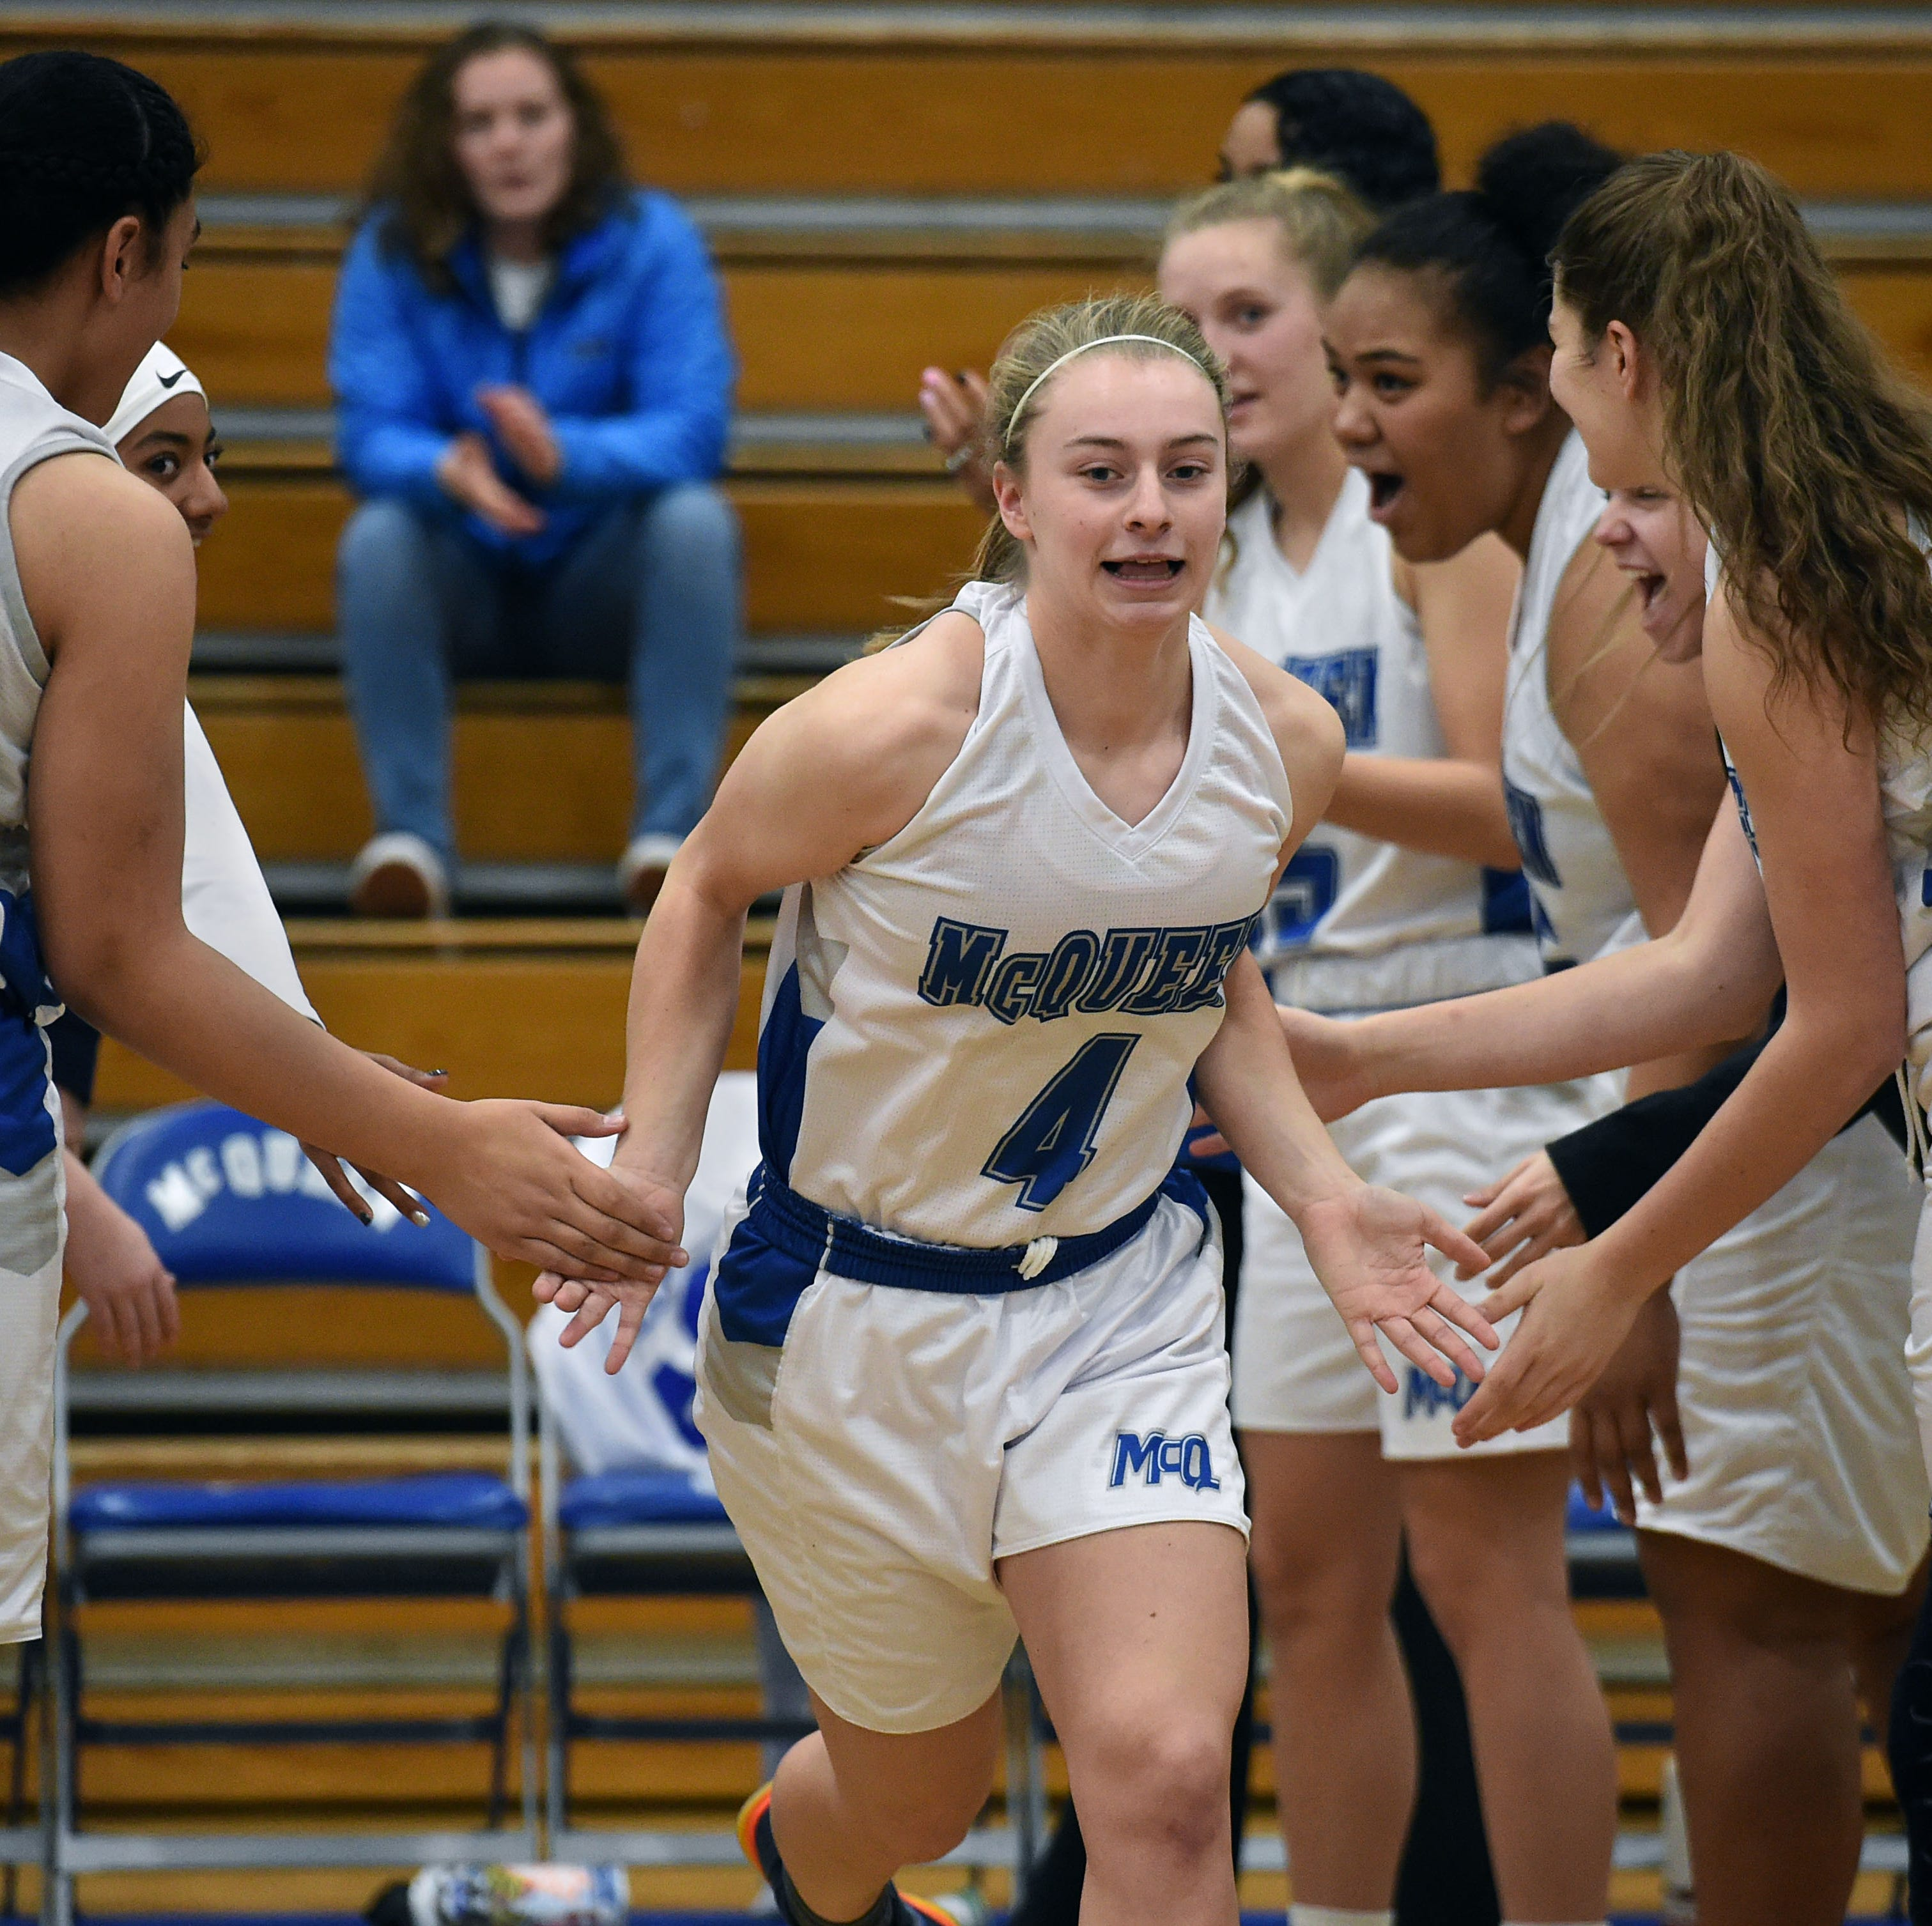 McAninch helping McQueen girls basketball to another stellar season